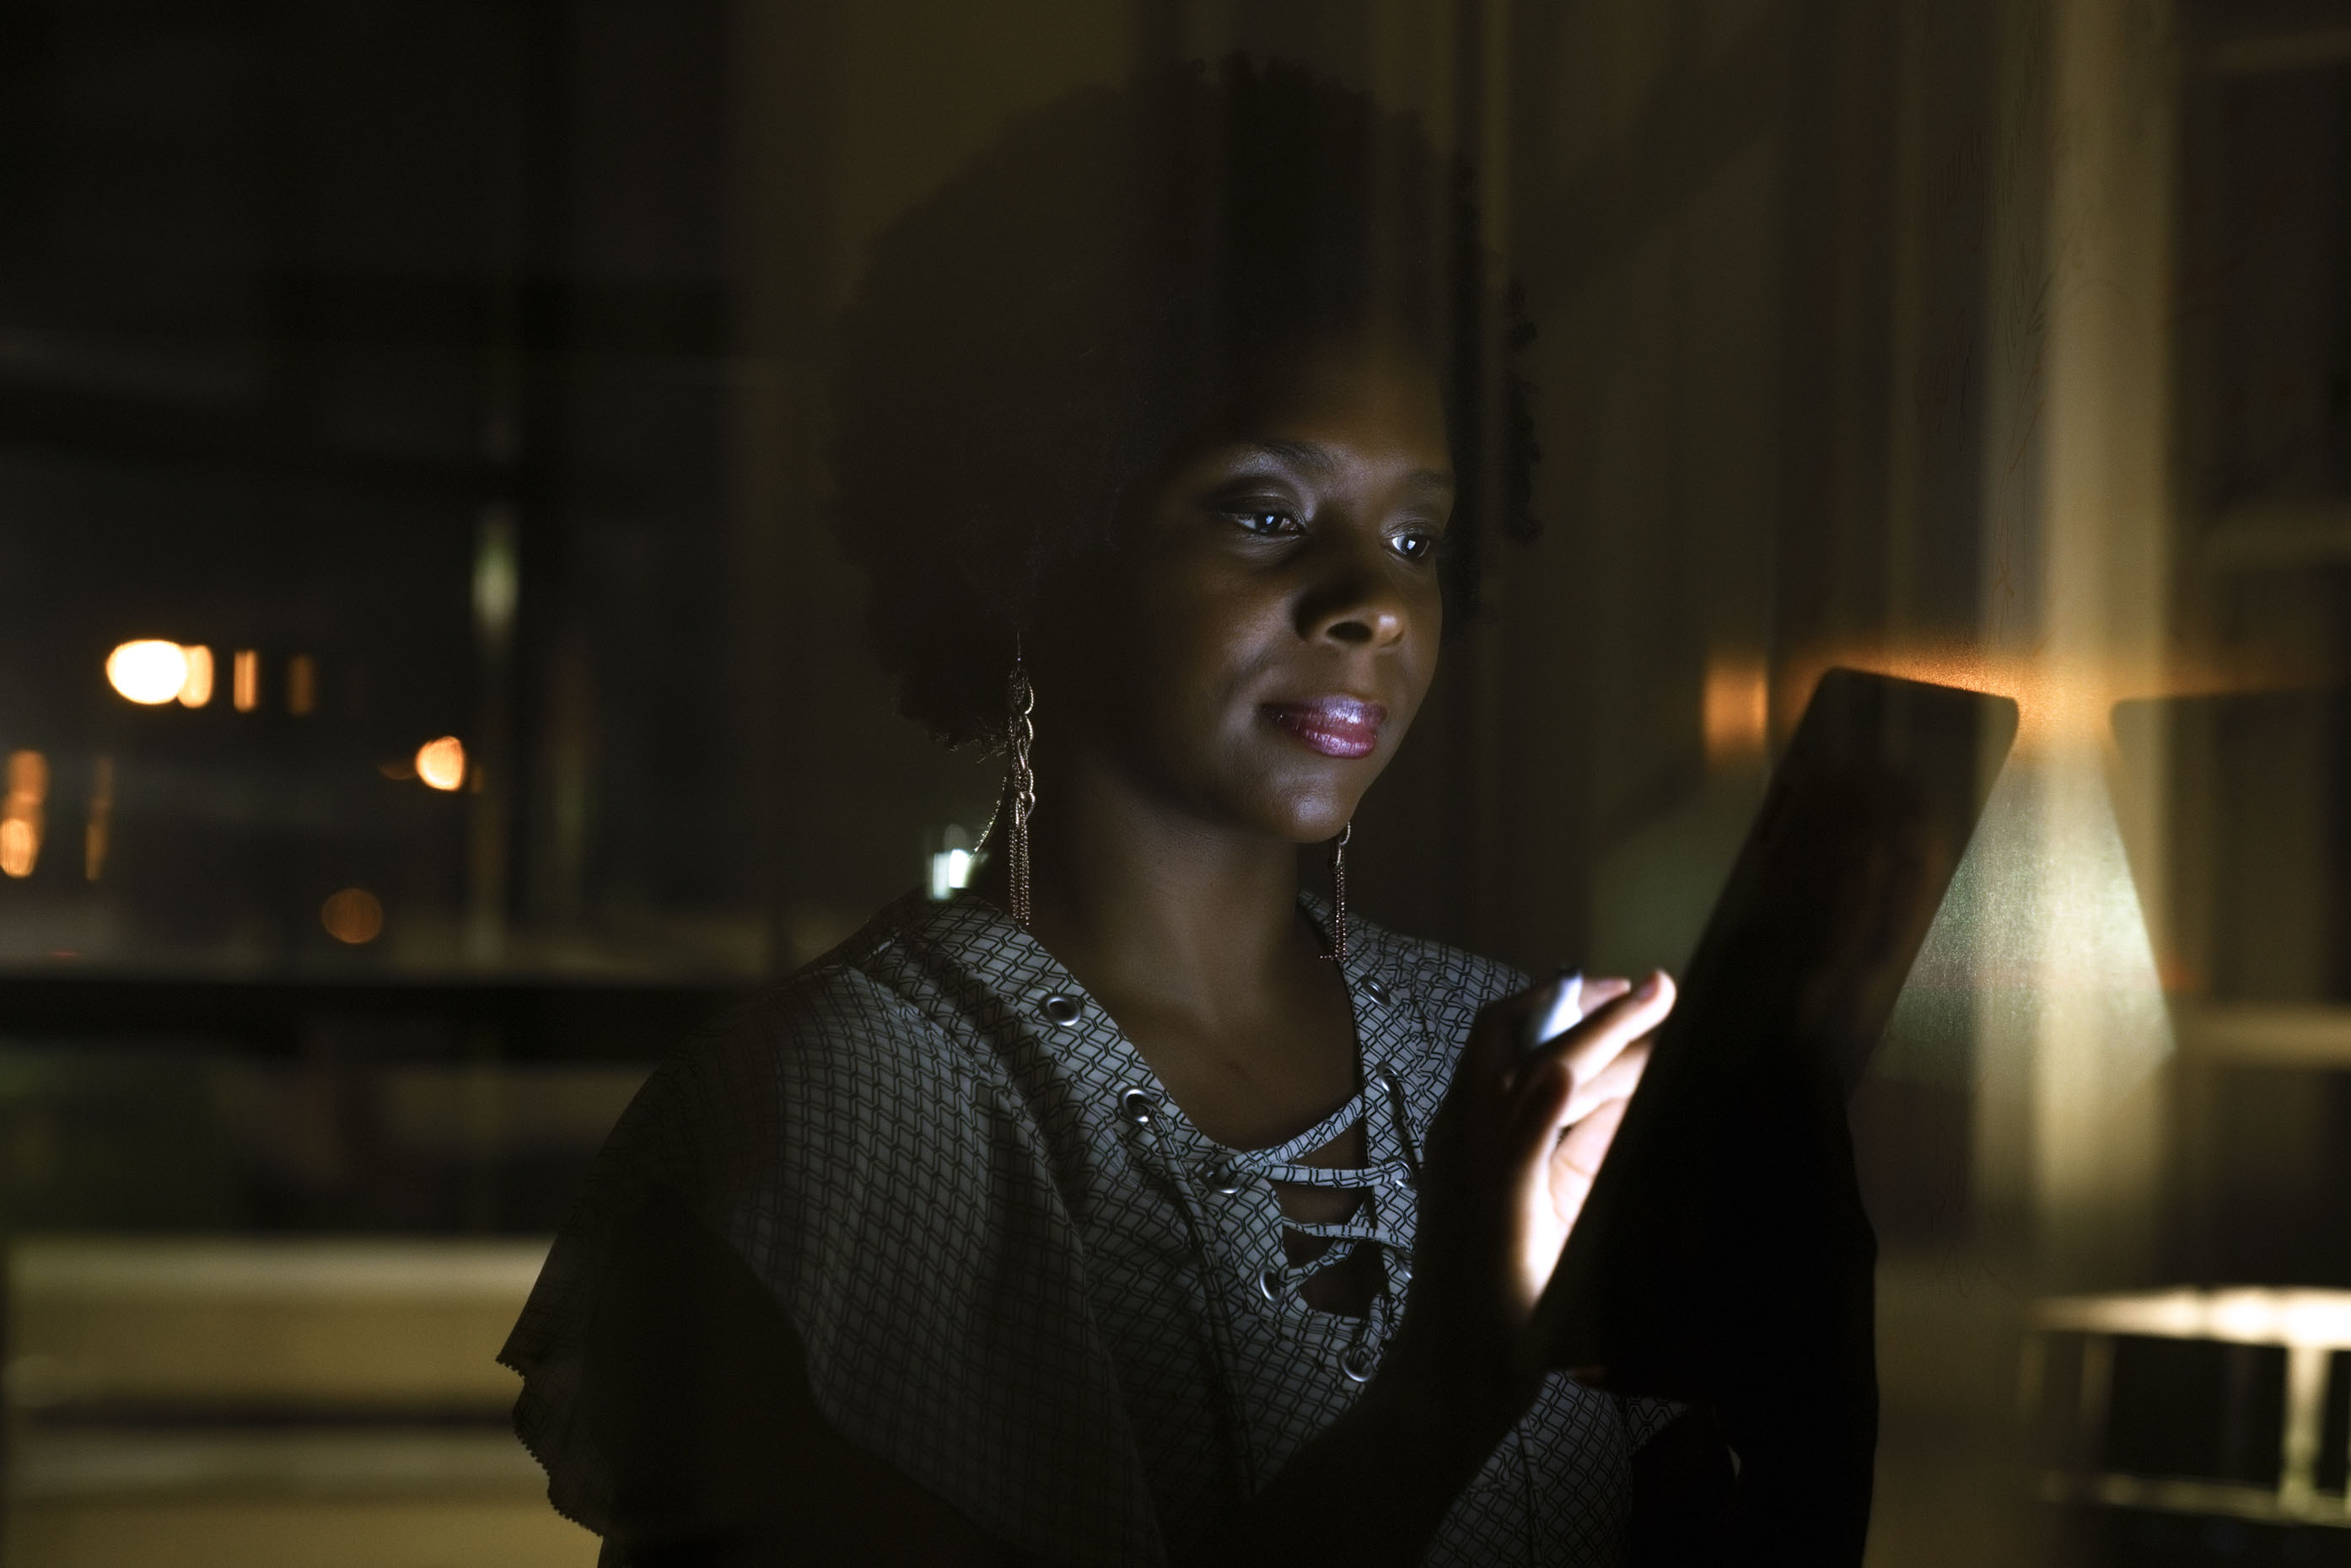 Black-woman-working-on-tablet-computer-at-night-Inti-St-Clair-LYDA_201703273114